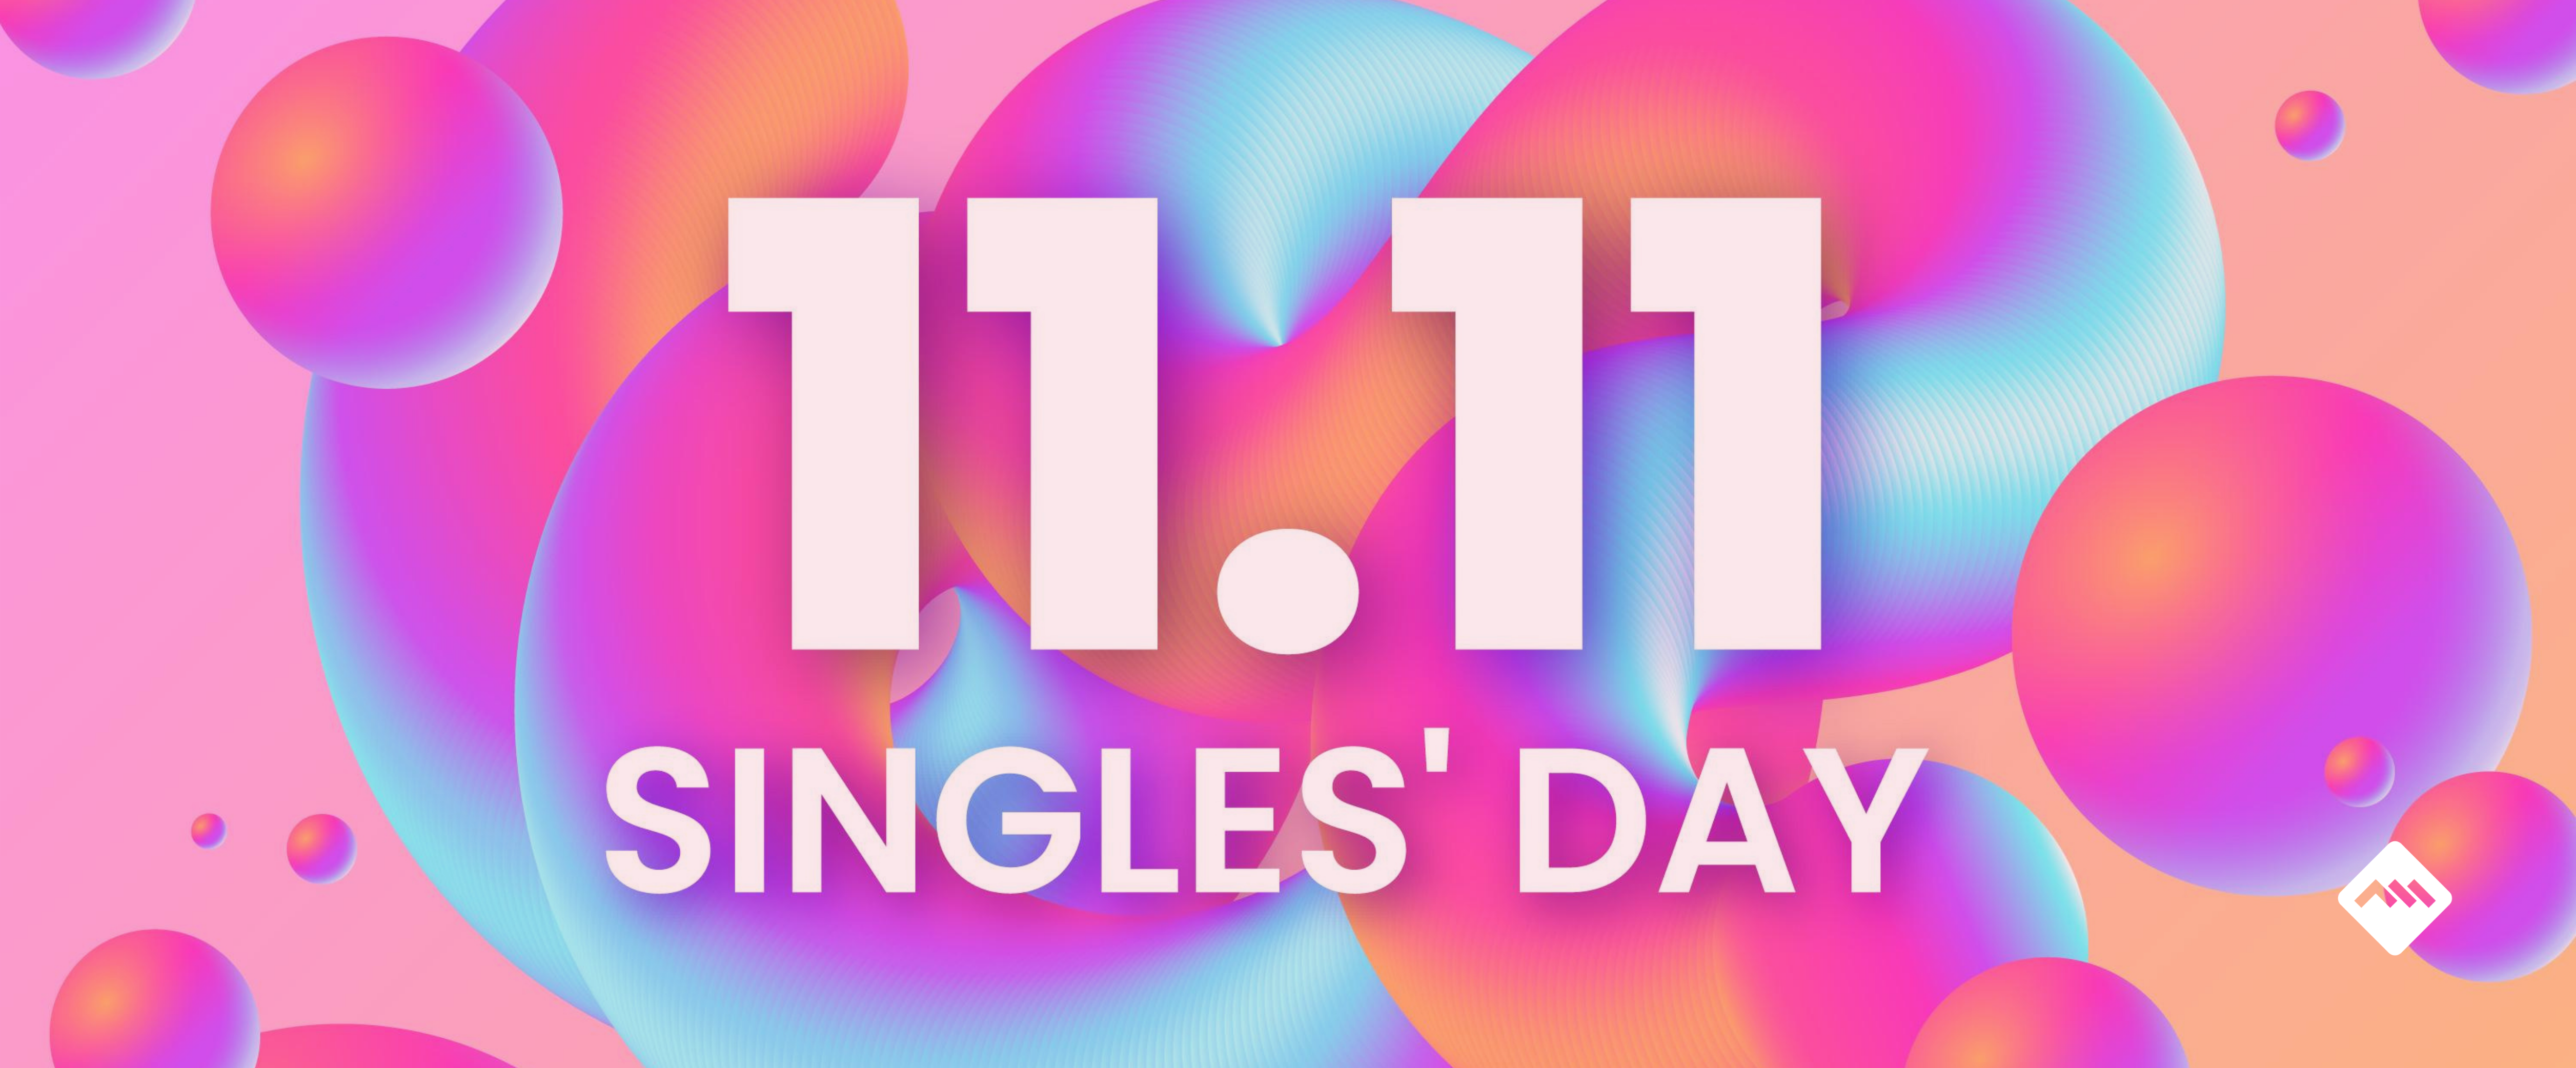 Double 11: The Ultimate Chinese Shopping Festival